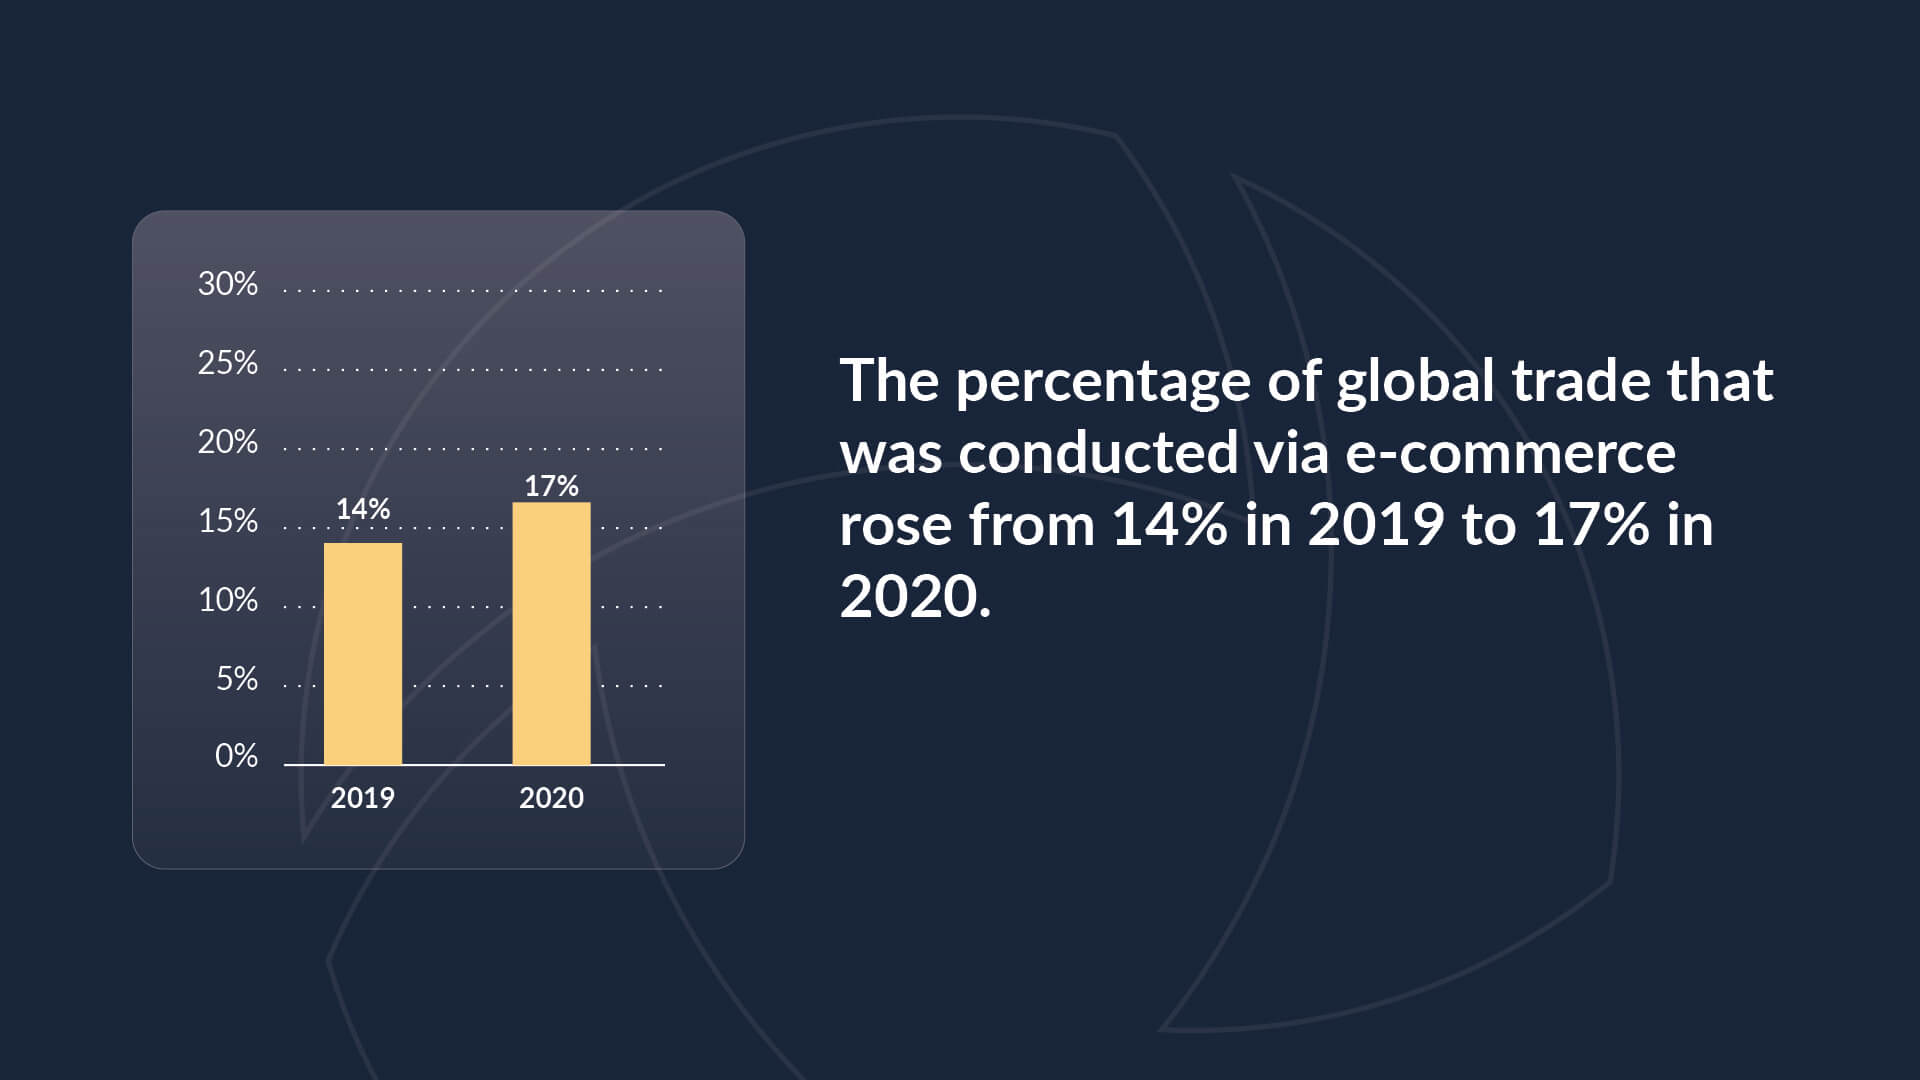 Chart showing the rise of e-commerce sales percentage of all global trade from 14% in 2019 to 17% in 2020.